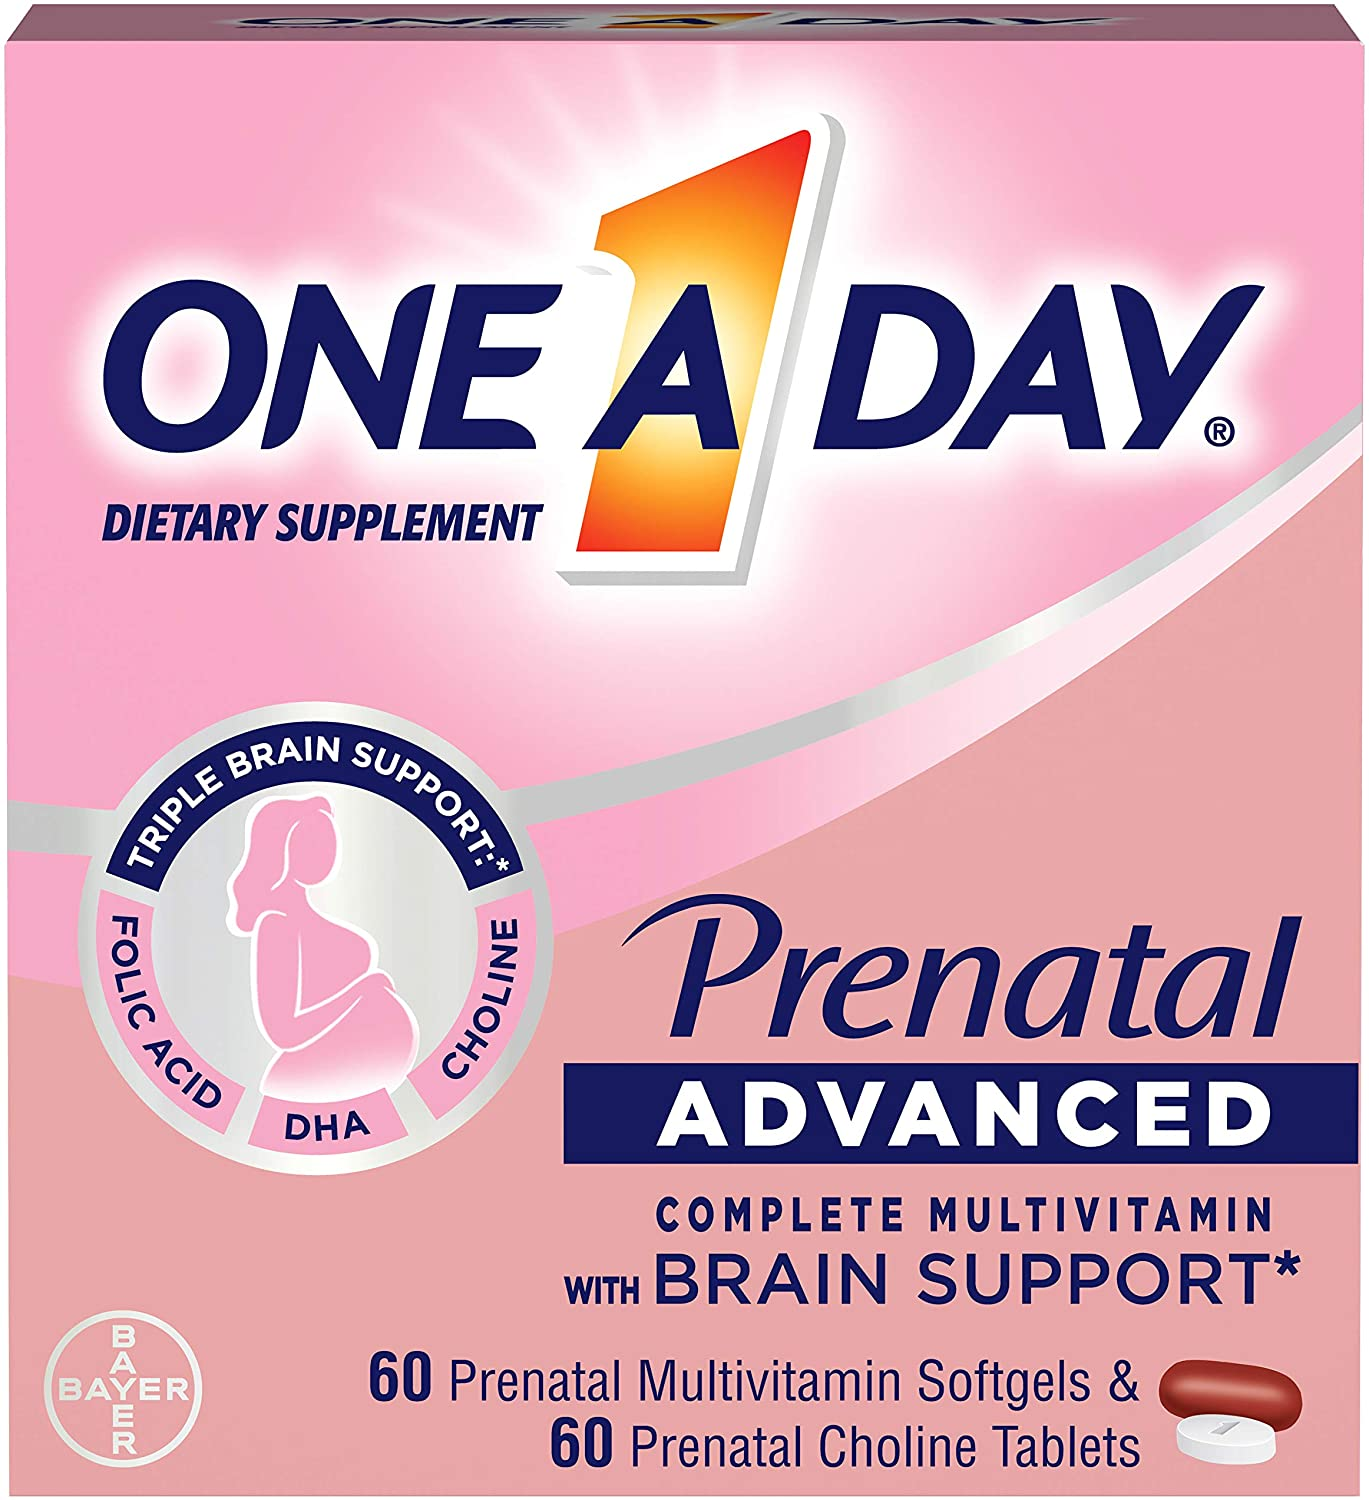 One A Day Women's Prenatal Advanced Complete Multivitamin with Brain Support* with Choline, Folic Acid, Omega-3 DHA & Iron for Pre, During and Post Pregnancy, 60+60 Count